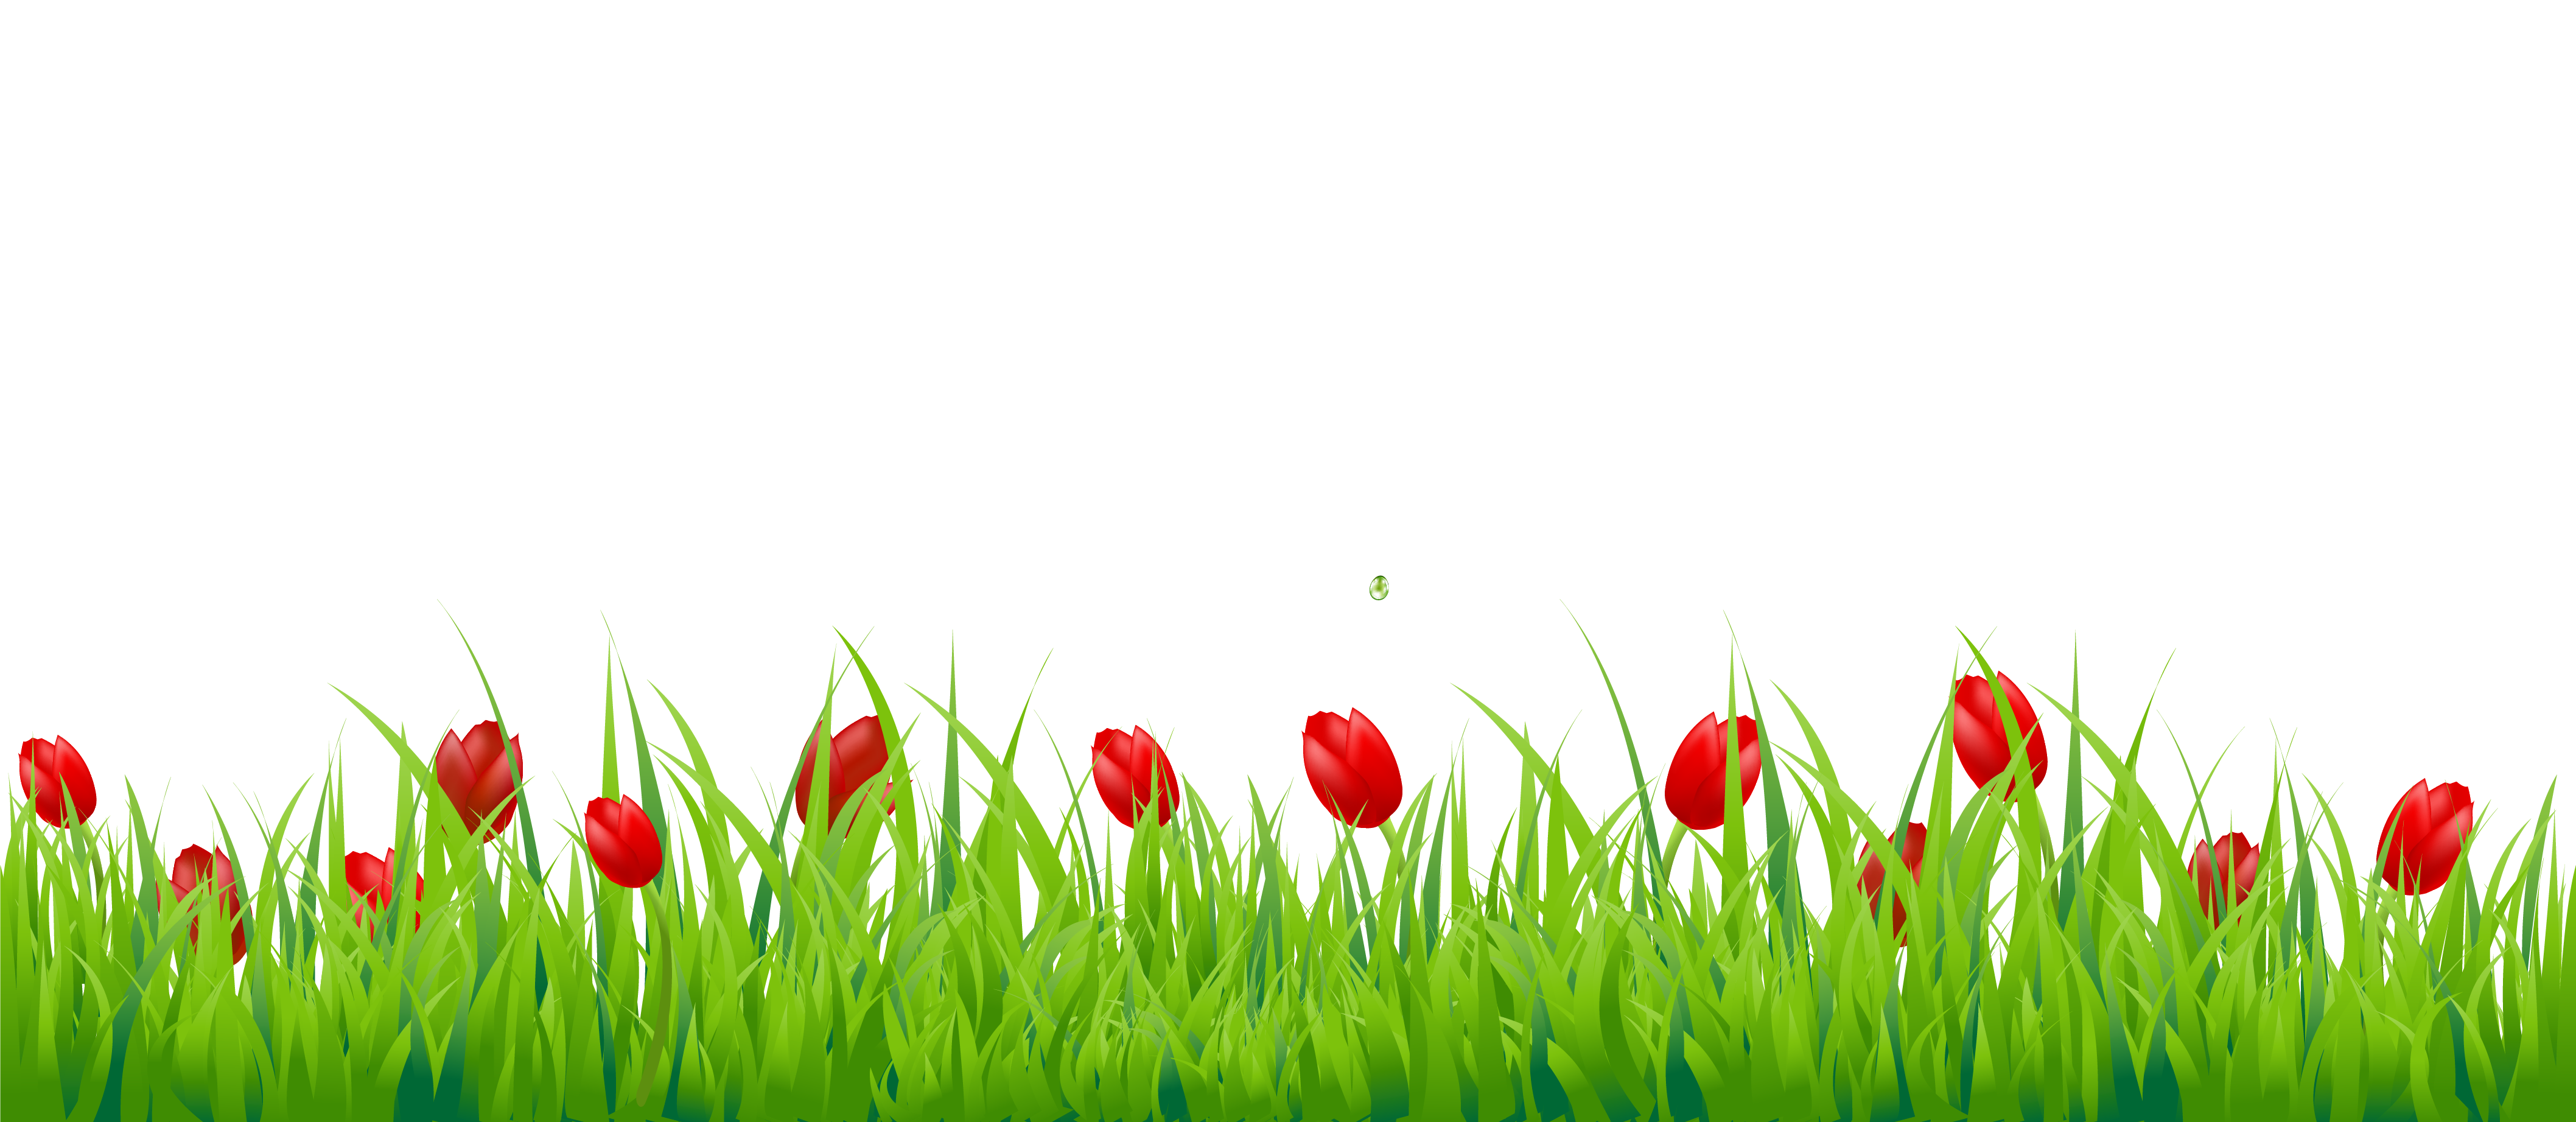 Grass cartoon png. Image purepng free transparent